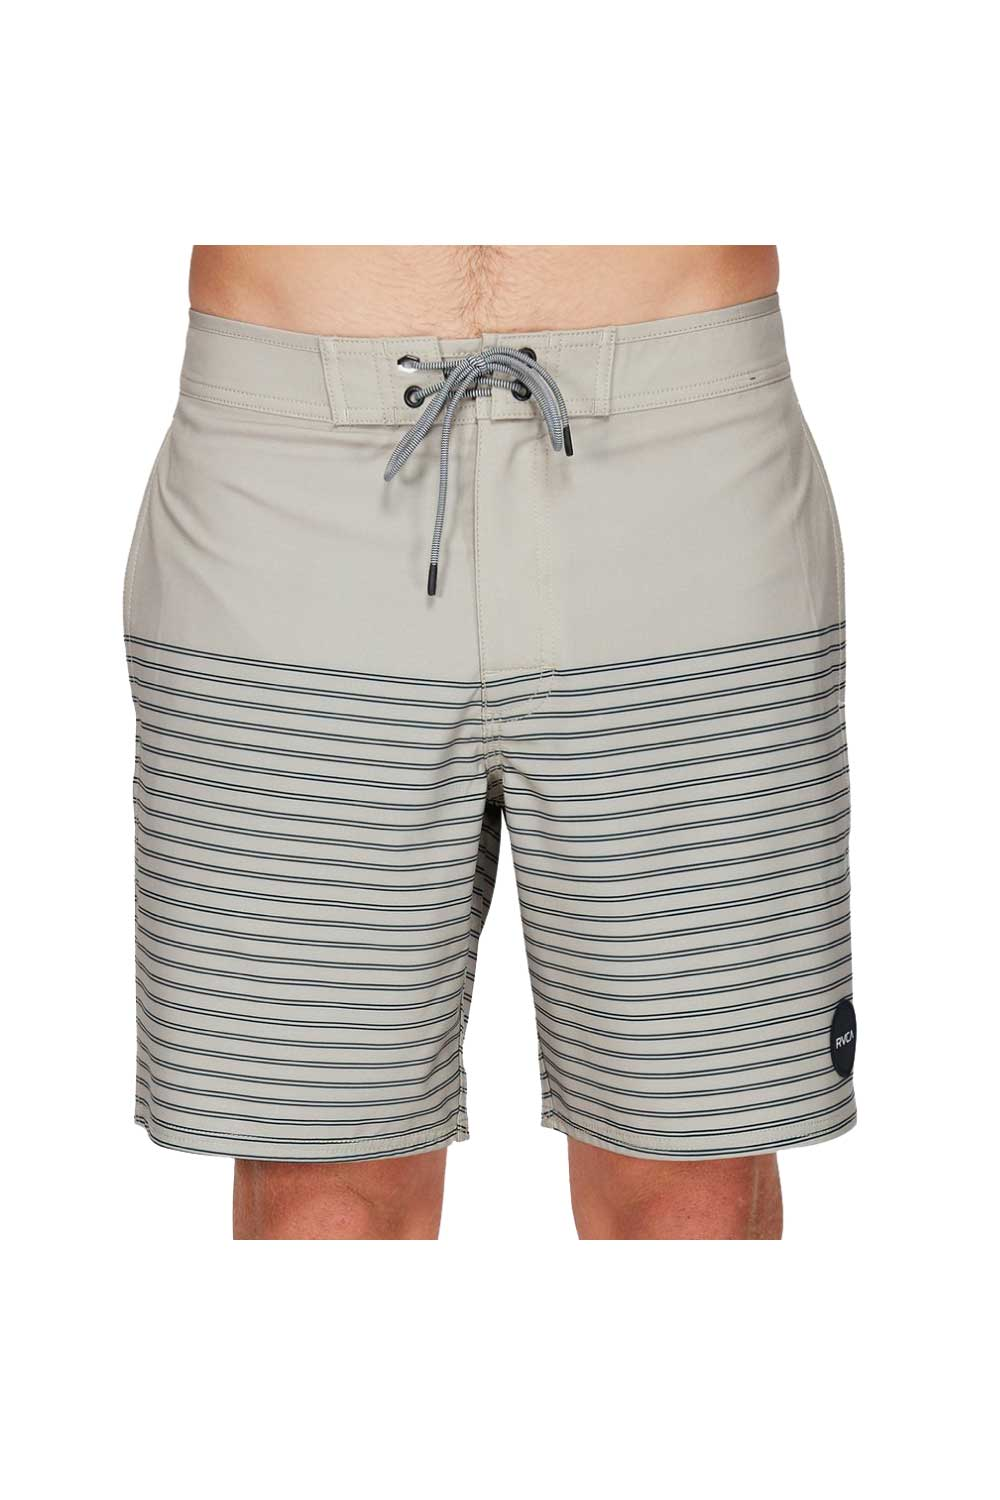 "RVCA 18"" Curren Trunk Boardshorts"